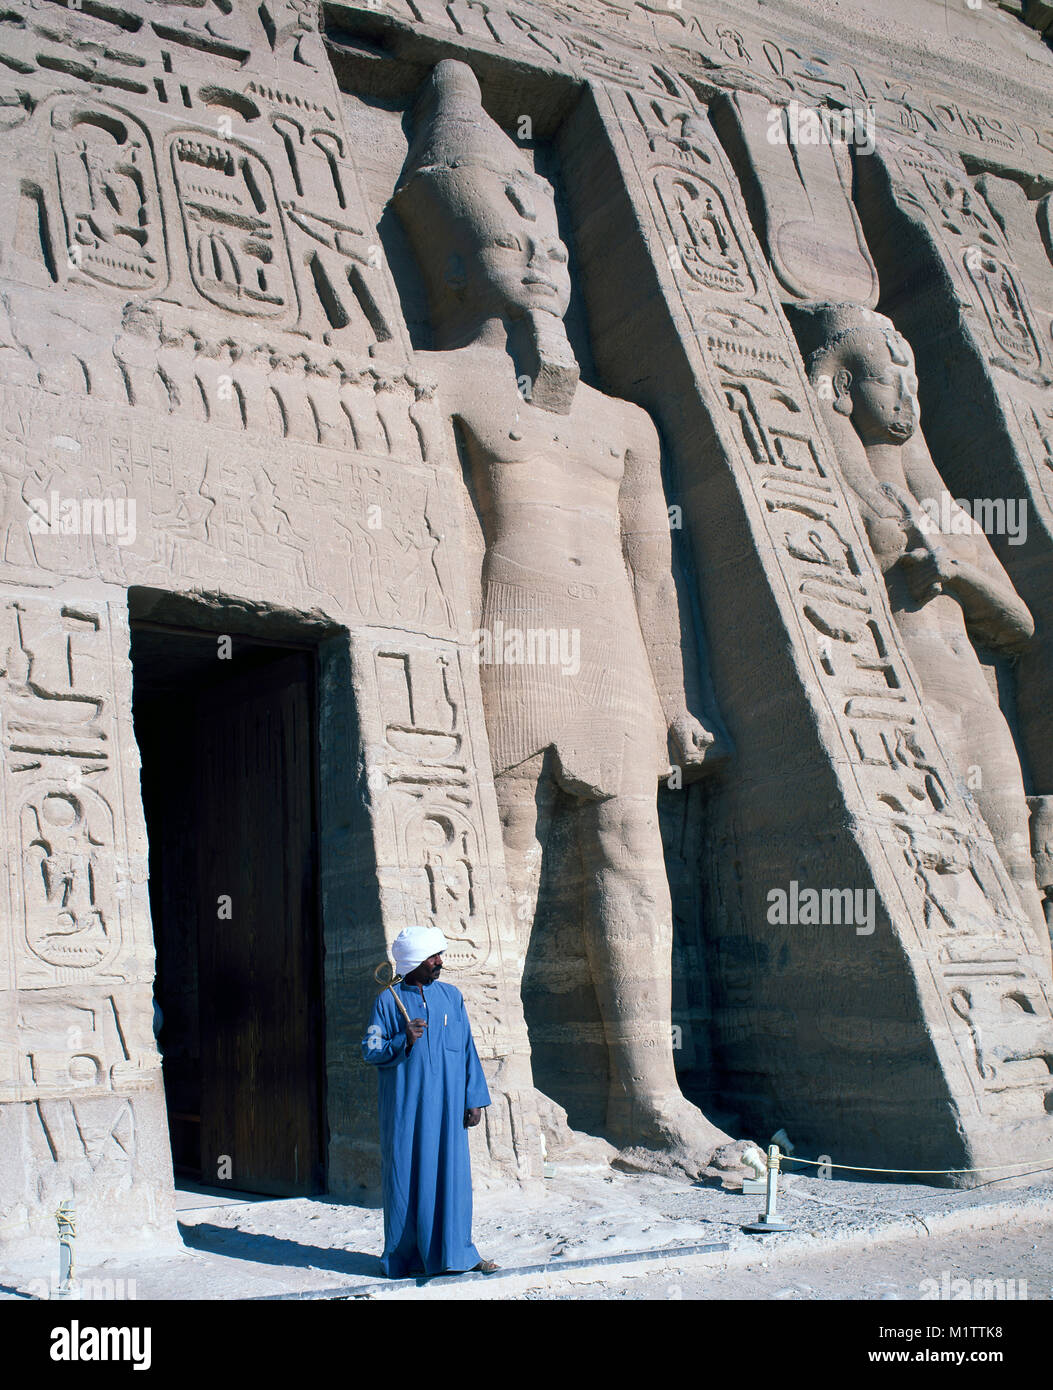 The Great Temple of Rameses 11 at Abu Simbel, Nubia, Upper Egypt. - Stock Image